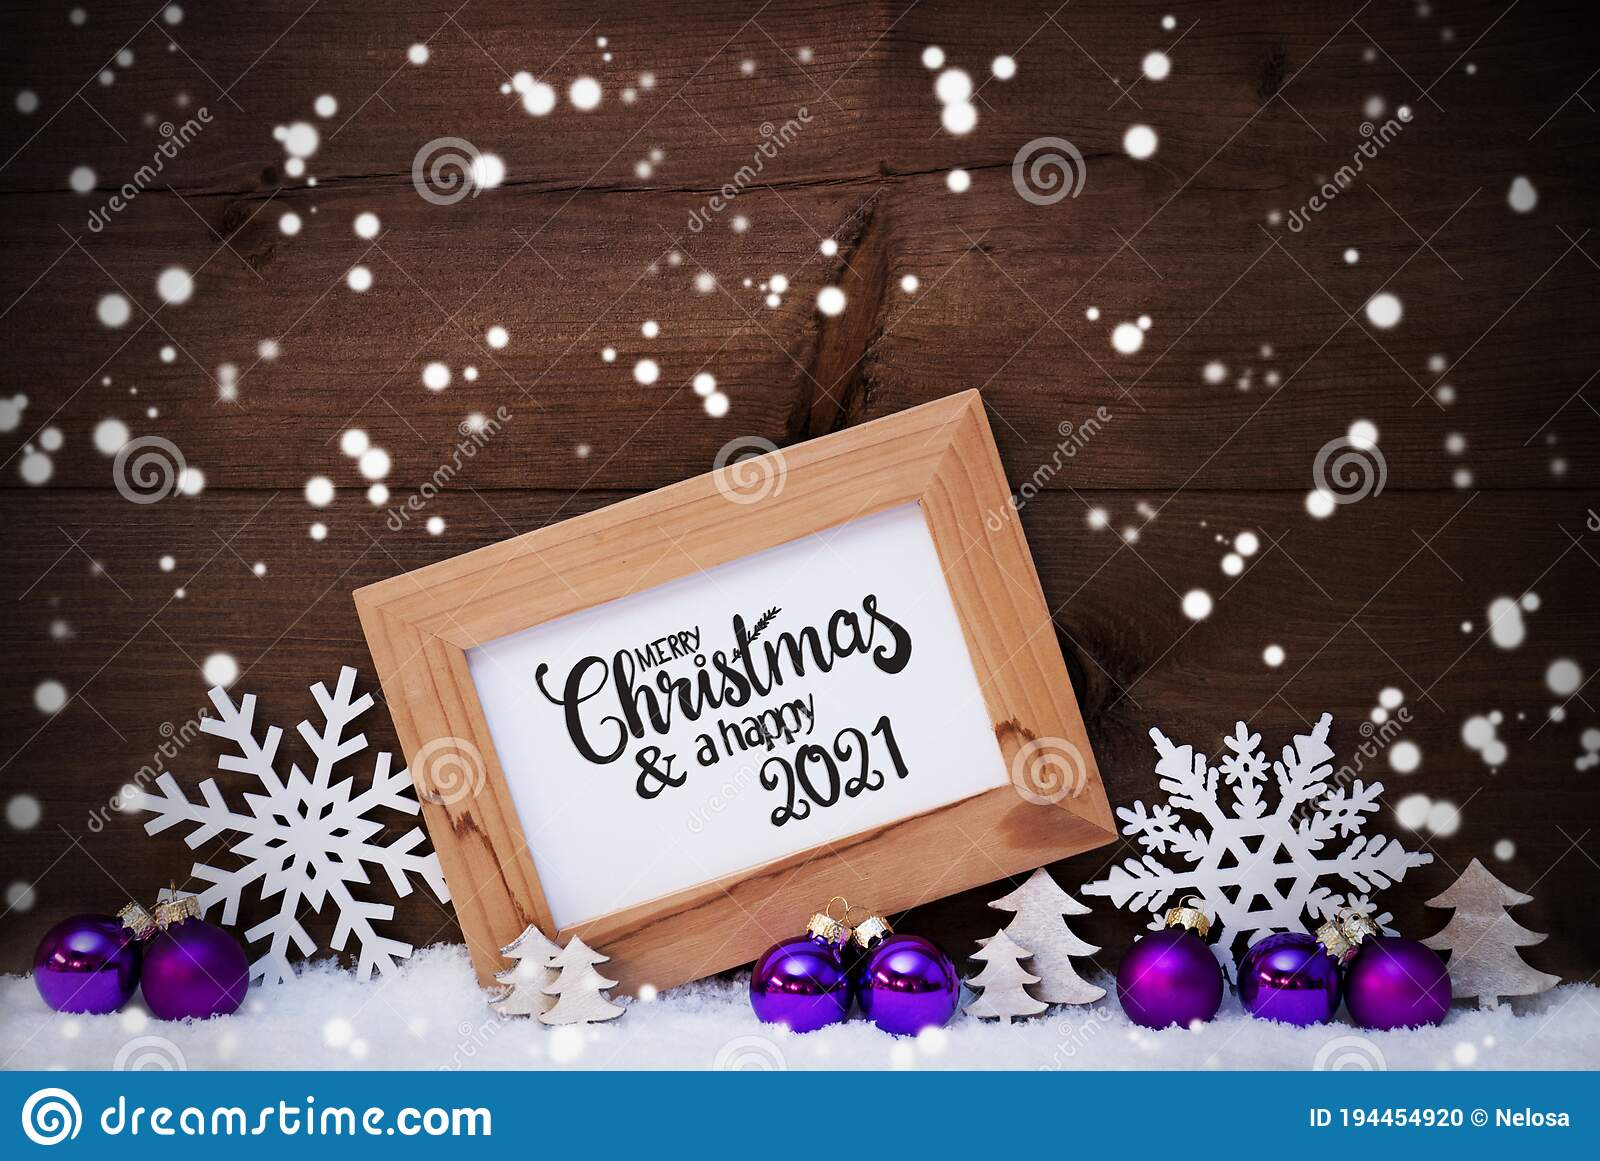 Closed For Christmas 2021 Purple Ornements Pics Frame Purple Ball Tree Snow Snowflakes Merry Christmas And A Happy 2021 Stock Photo Image Of Tree Calligraphy 194454920